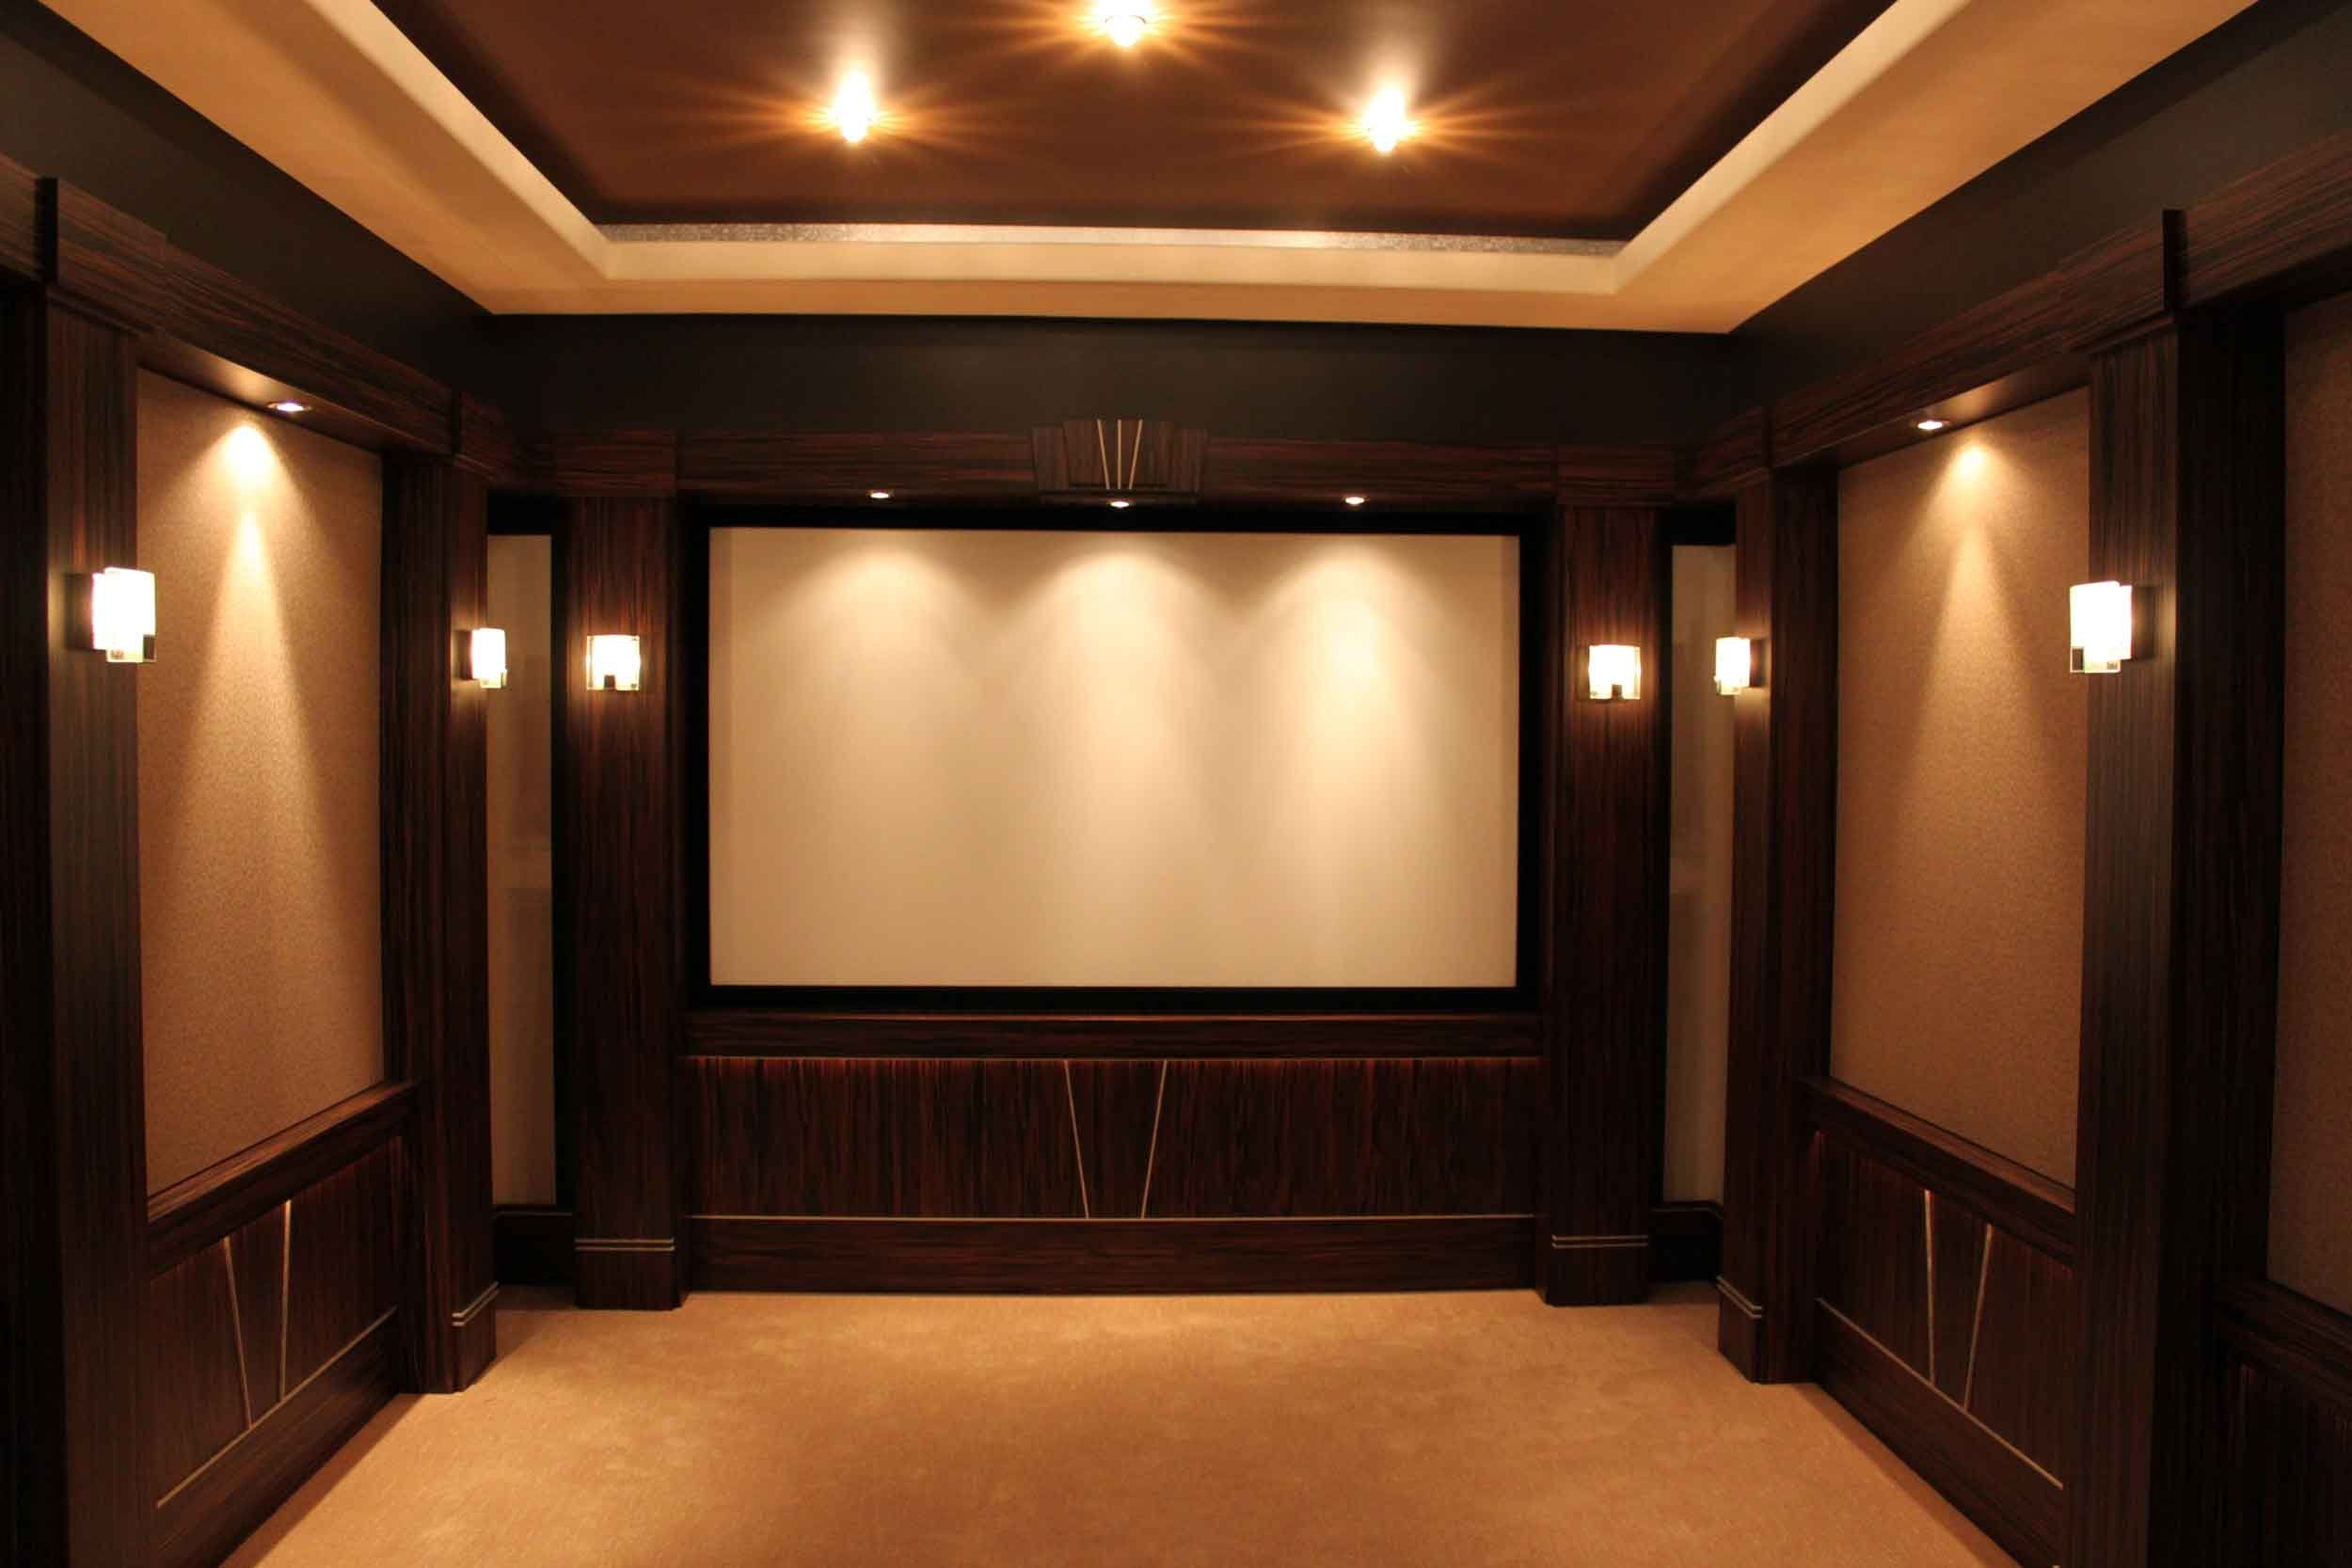 Interior Small Home Theater Room Ideas Big Screen On The Beige Wall Long Table Bar Movie Small Home Theater Room Ideas Big Screen On The Beige Wall Long